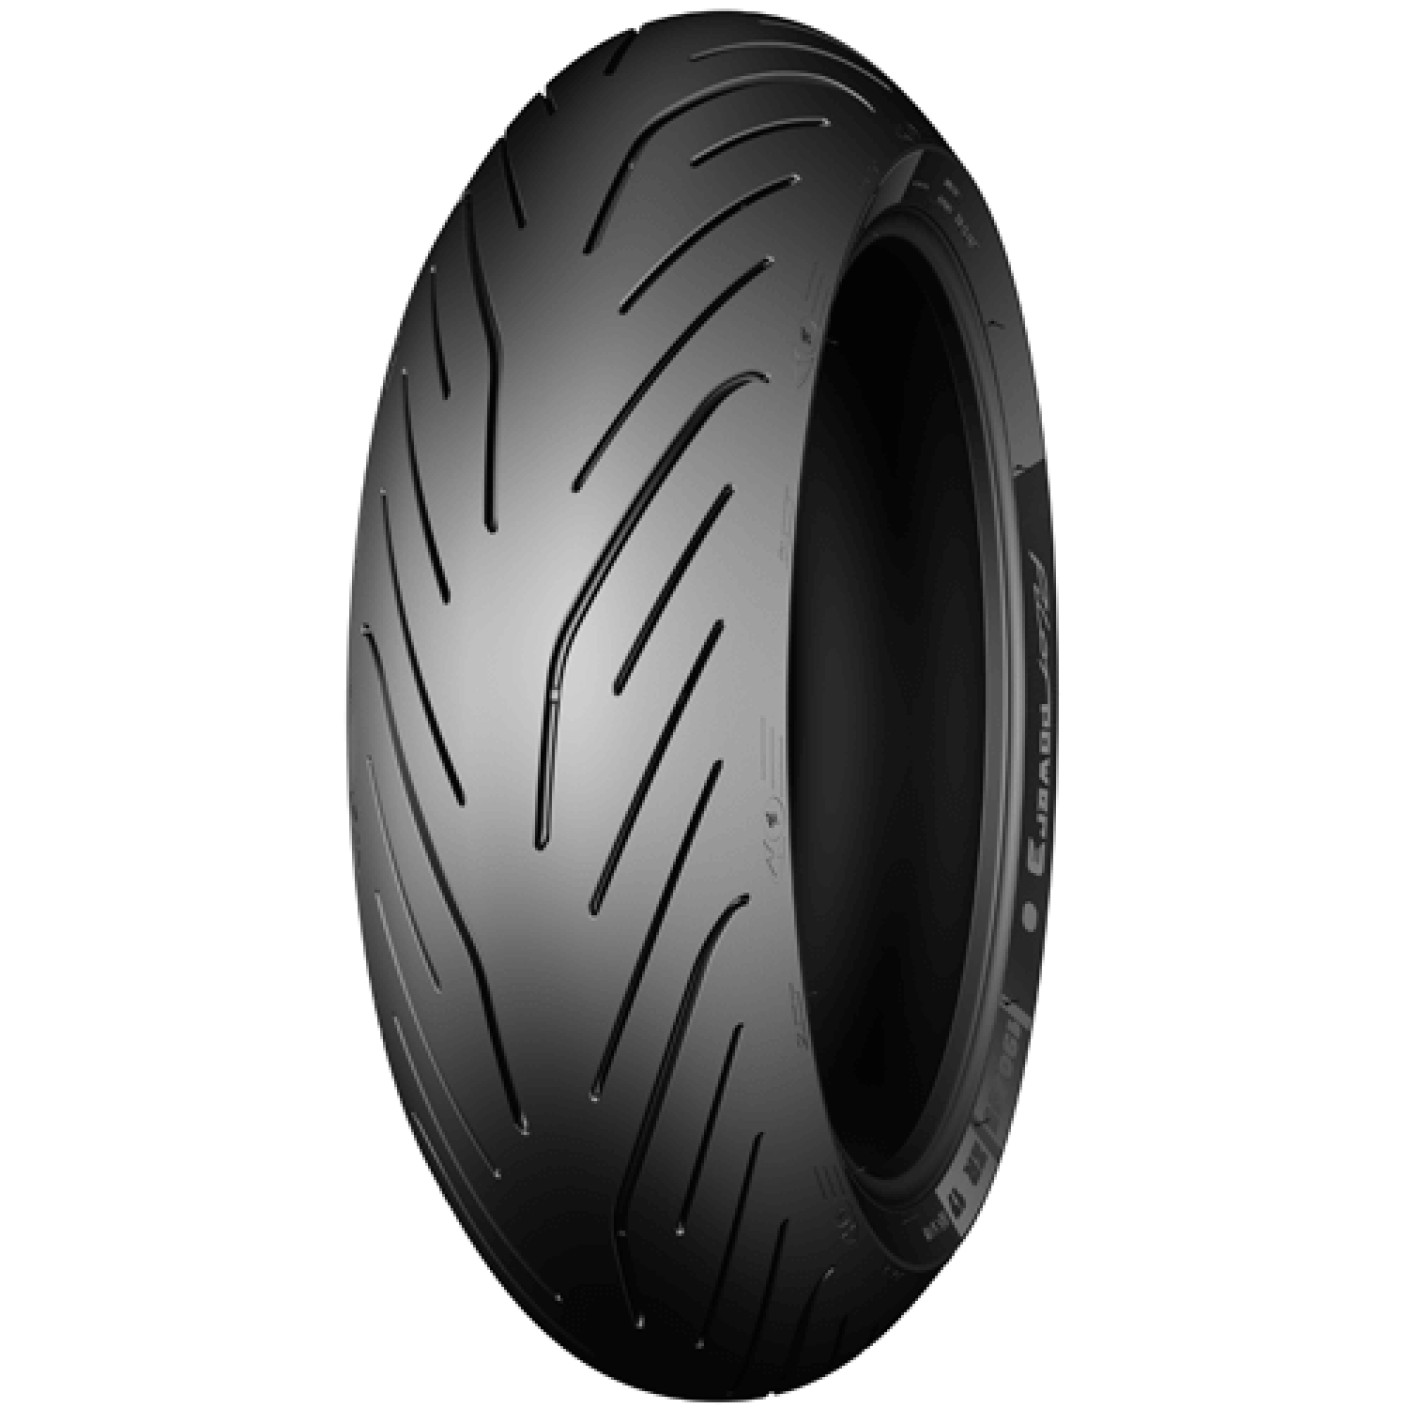 Michelin PILOT POWER 3 190/50 ZR 17 Tubeless 73 W Rear Two-Wheeler Tyre